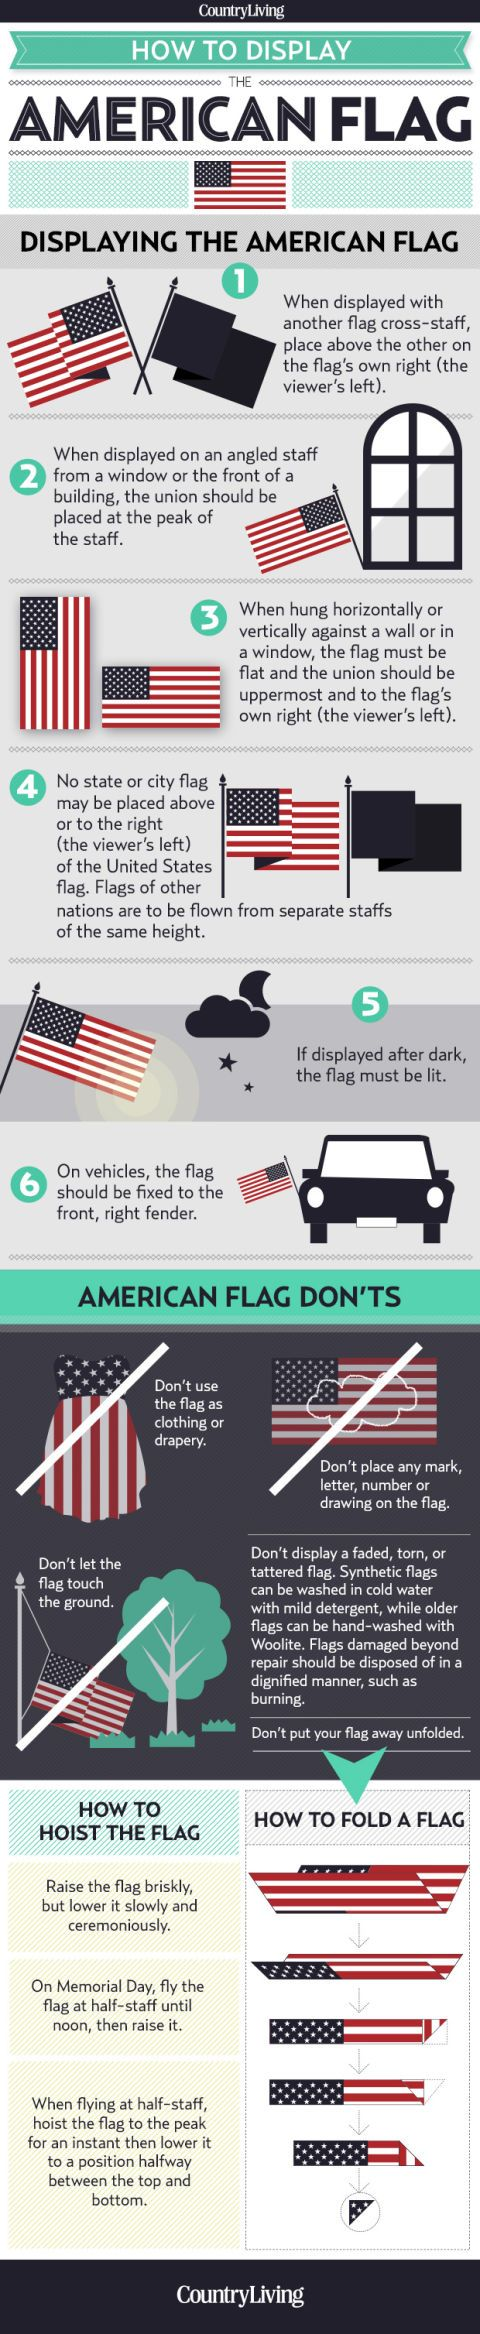 25 best ideas about american flag history on pinterest us flag history american state flags. Black Bedroom Furniture Sets. Home Design Ideas